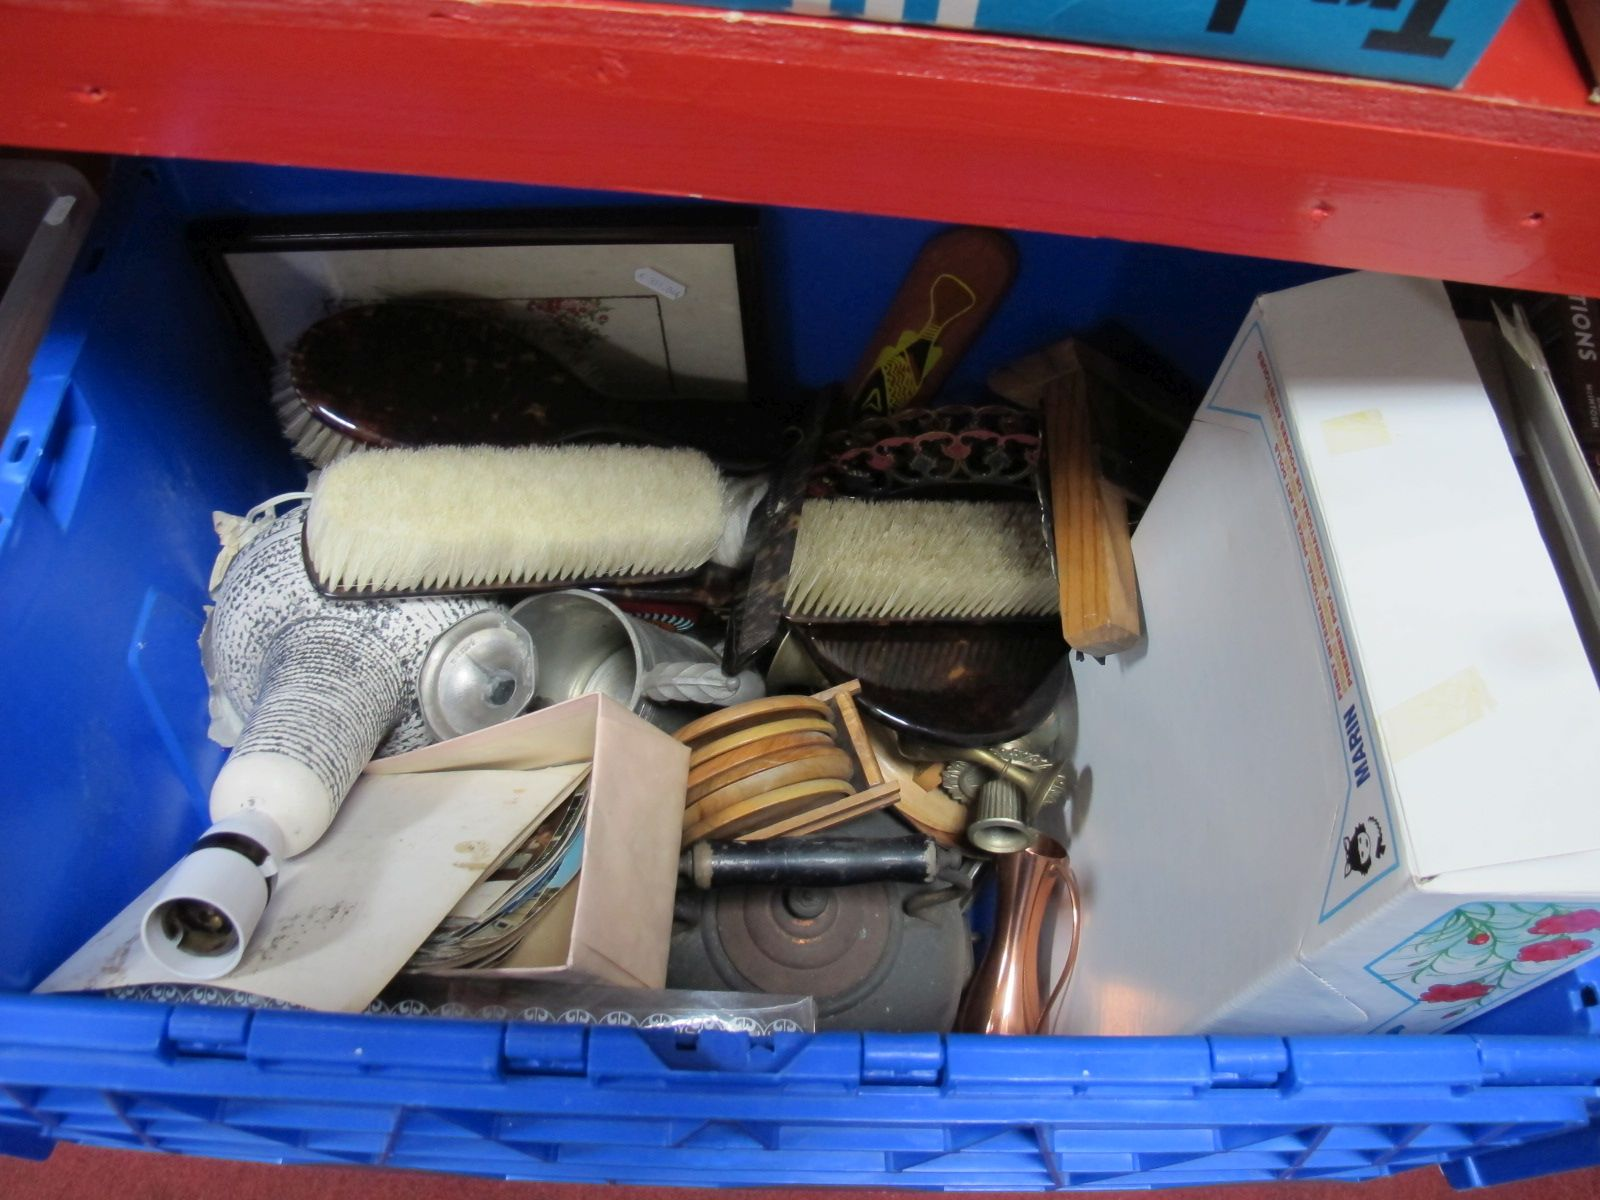 Lot 638 - Postcards, lamp, cutlery, copper kettle, etc:- One Box